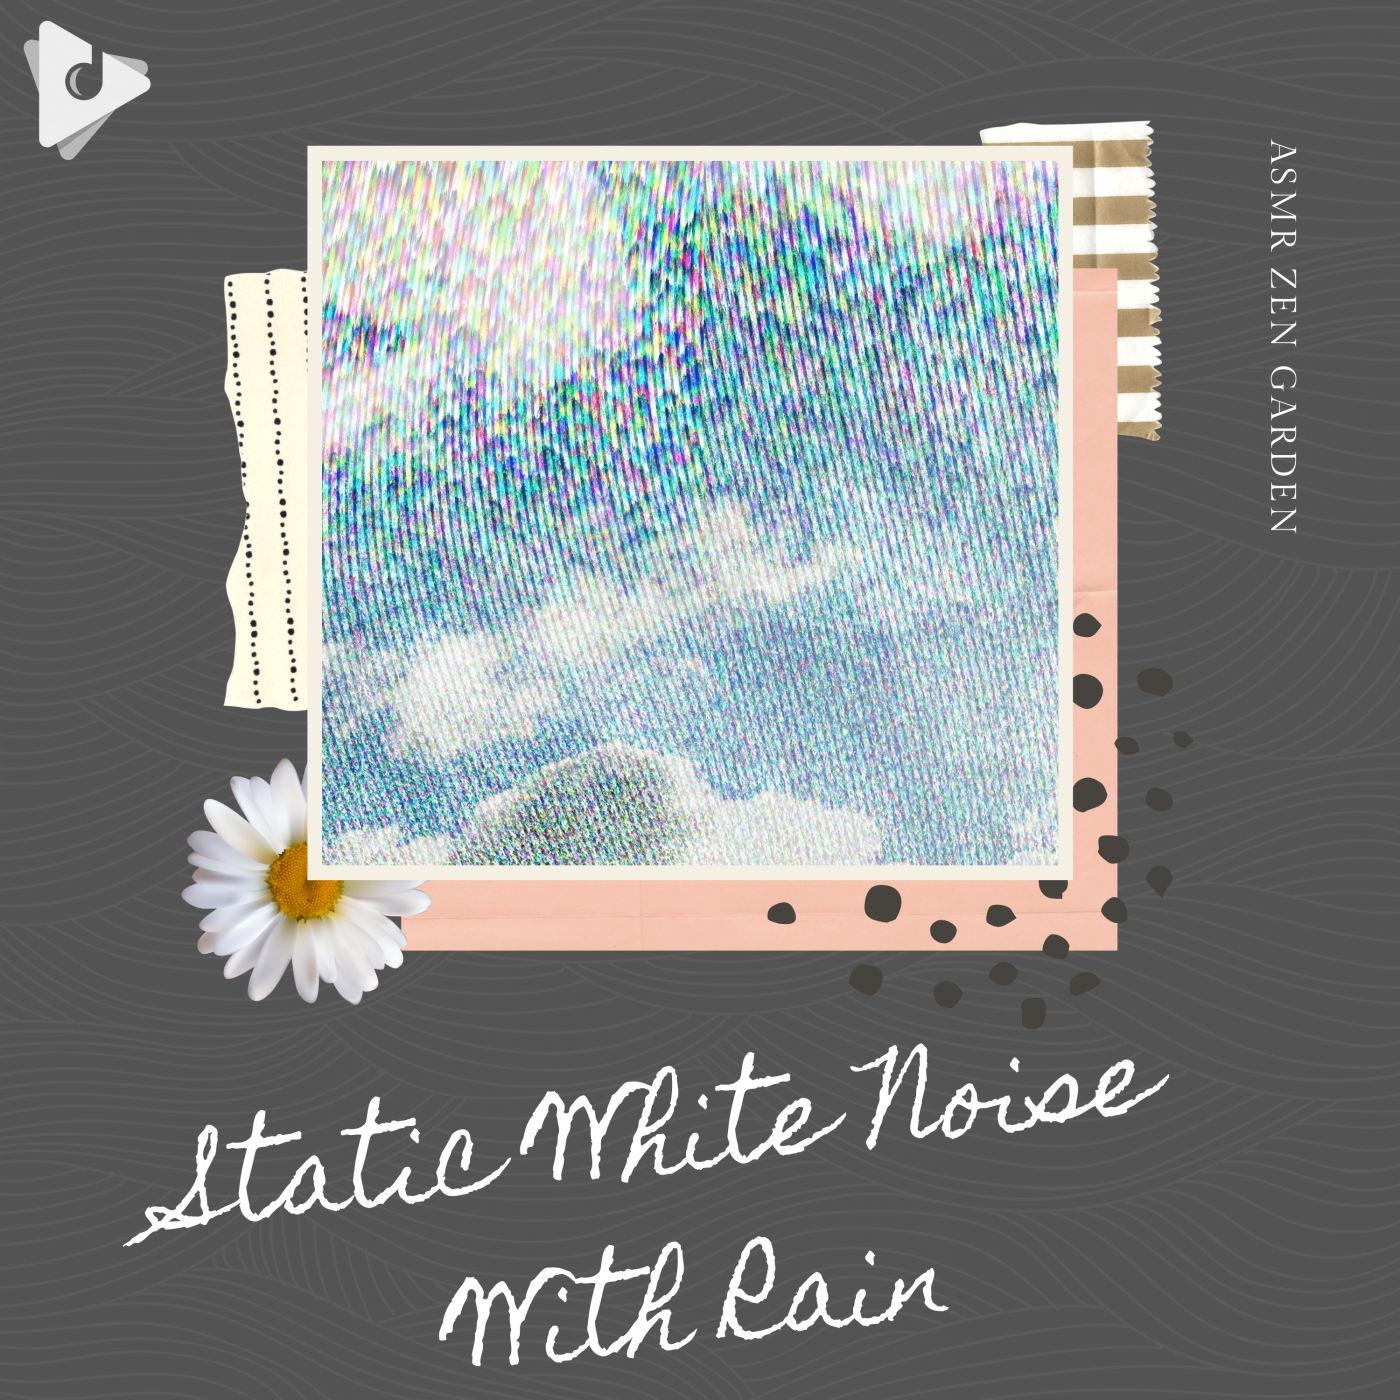 Static White Noise With Rain